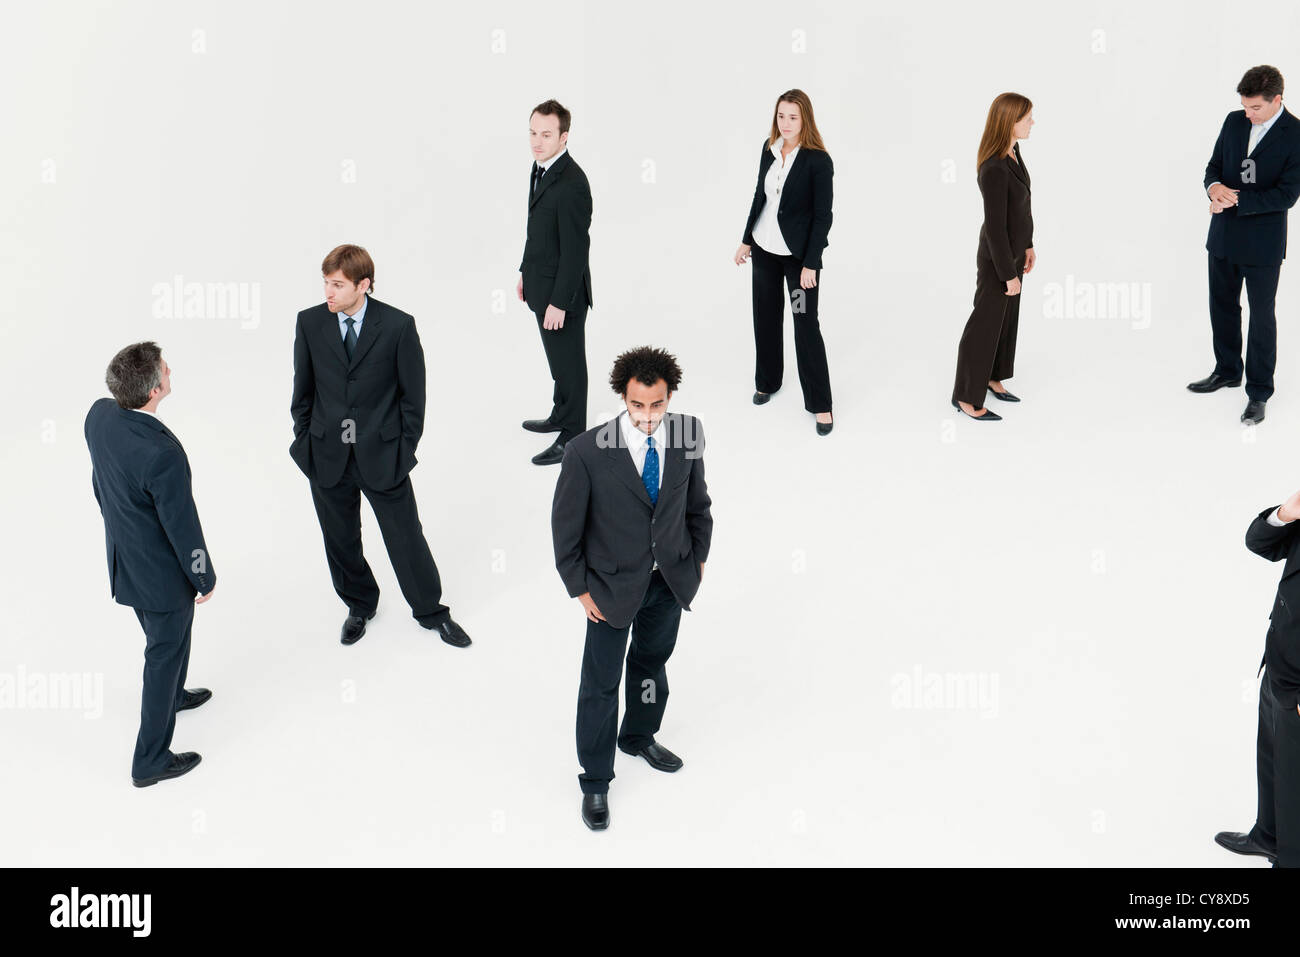 business professionals dressed for success stock photo royalty business professionals dressed for success